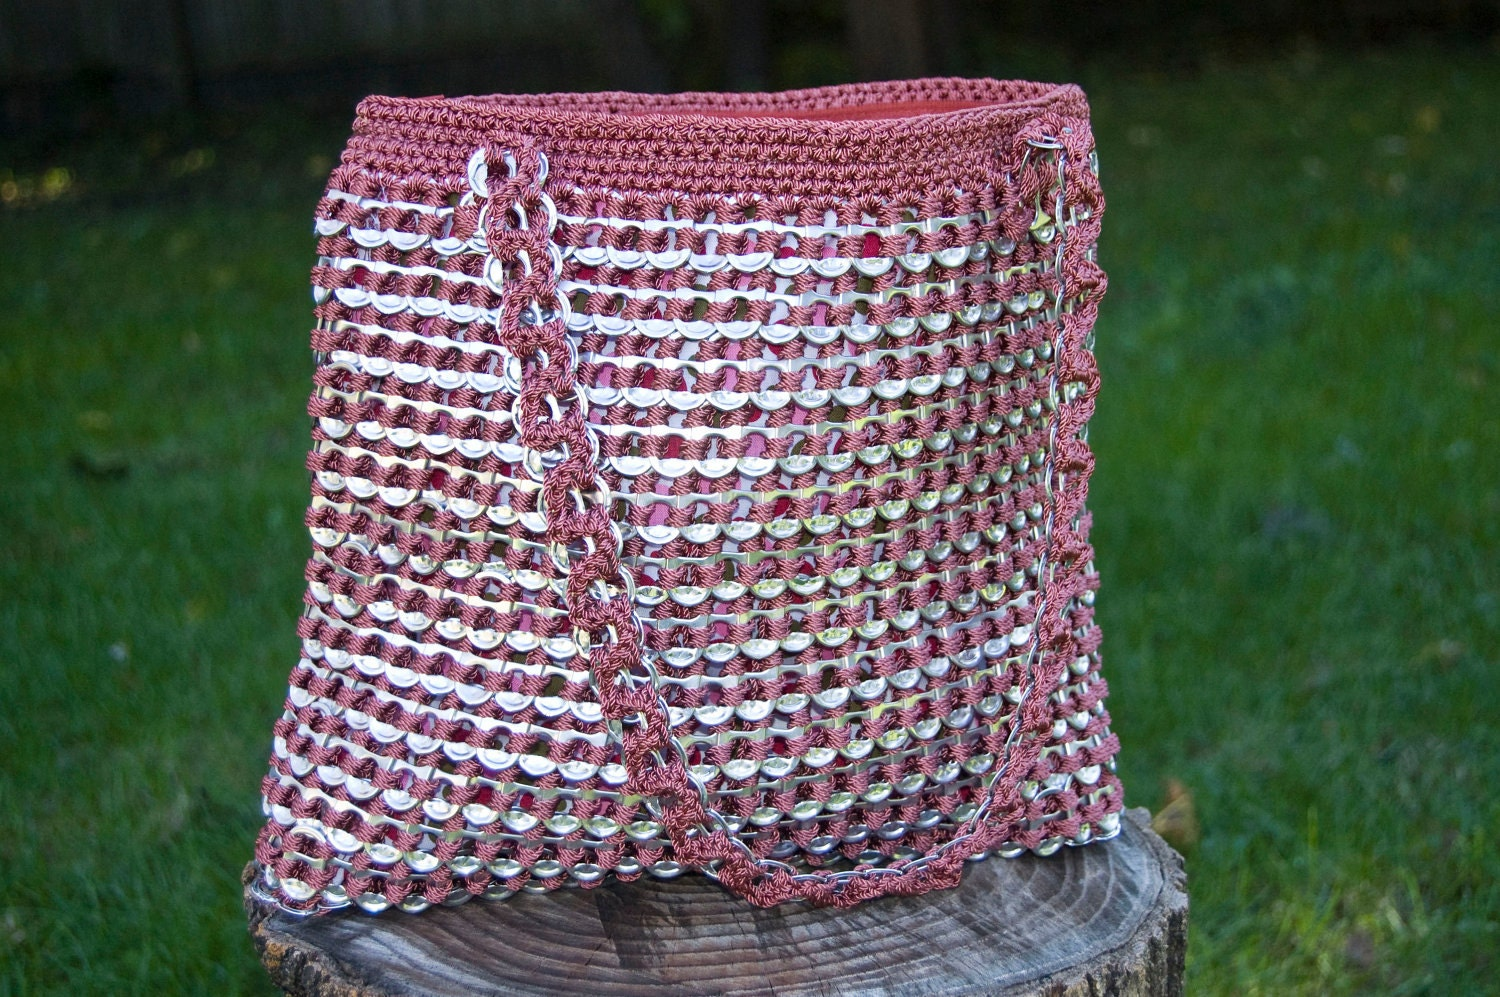 Crocheting With Pop Tabs : Upcycled Mauve Crochet Pop Tab Purse by Flor7 on Etsy